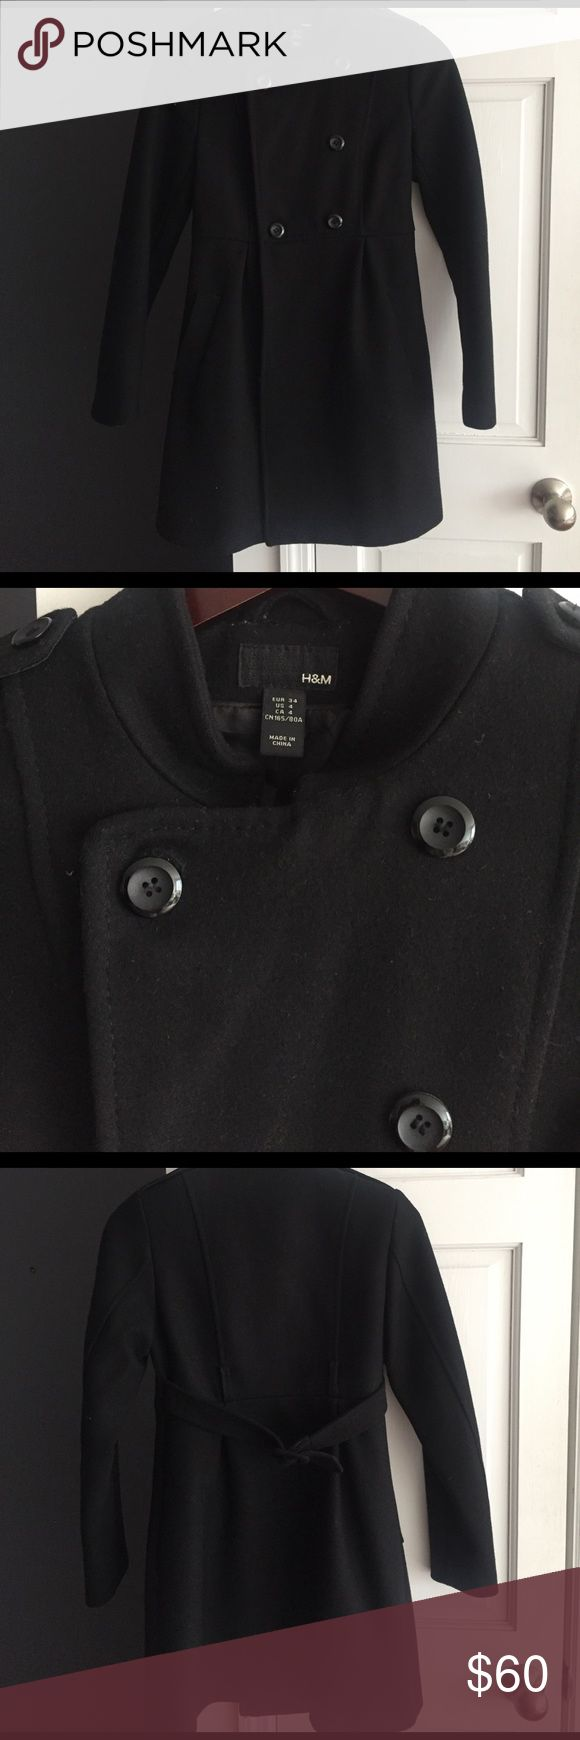 H&M coat. Size 4, black. H&M coat. Size 4. Double breasted. Black. Great condition. 32 inches long. H&M Jackets & Coats